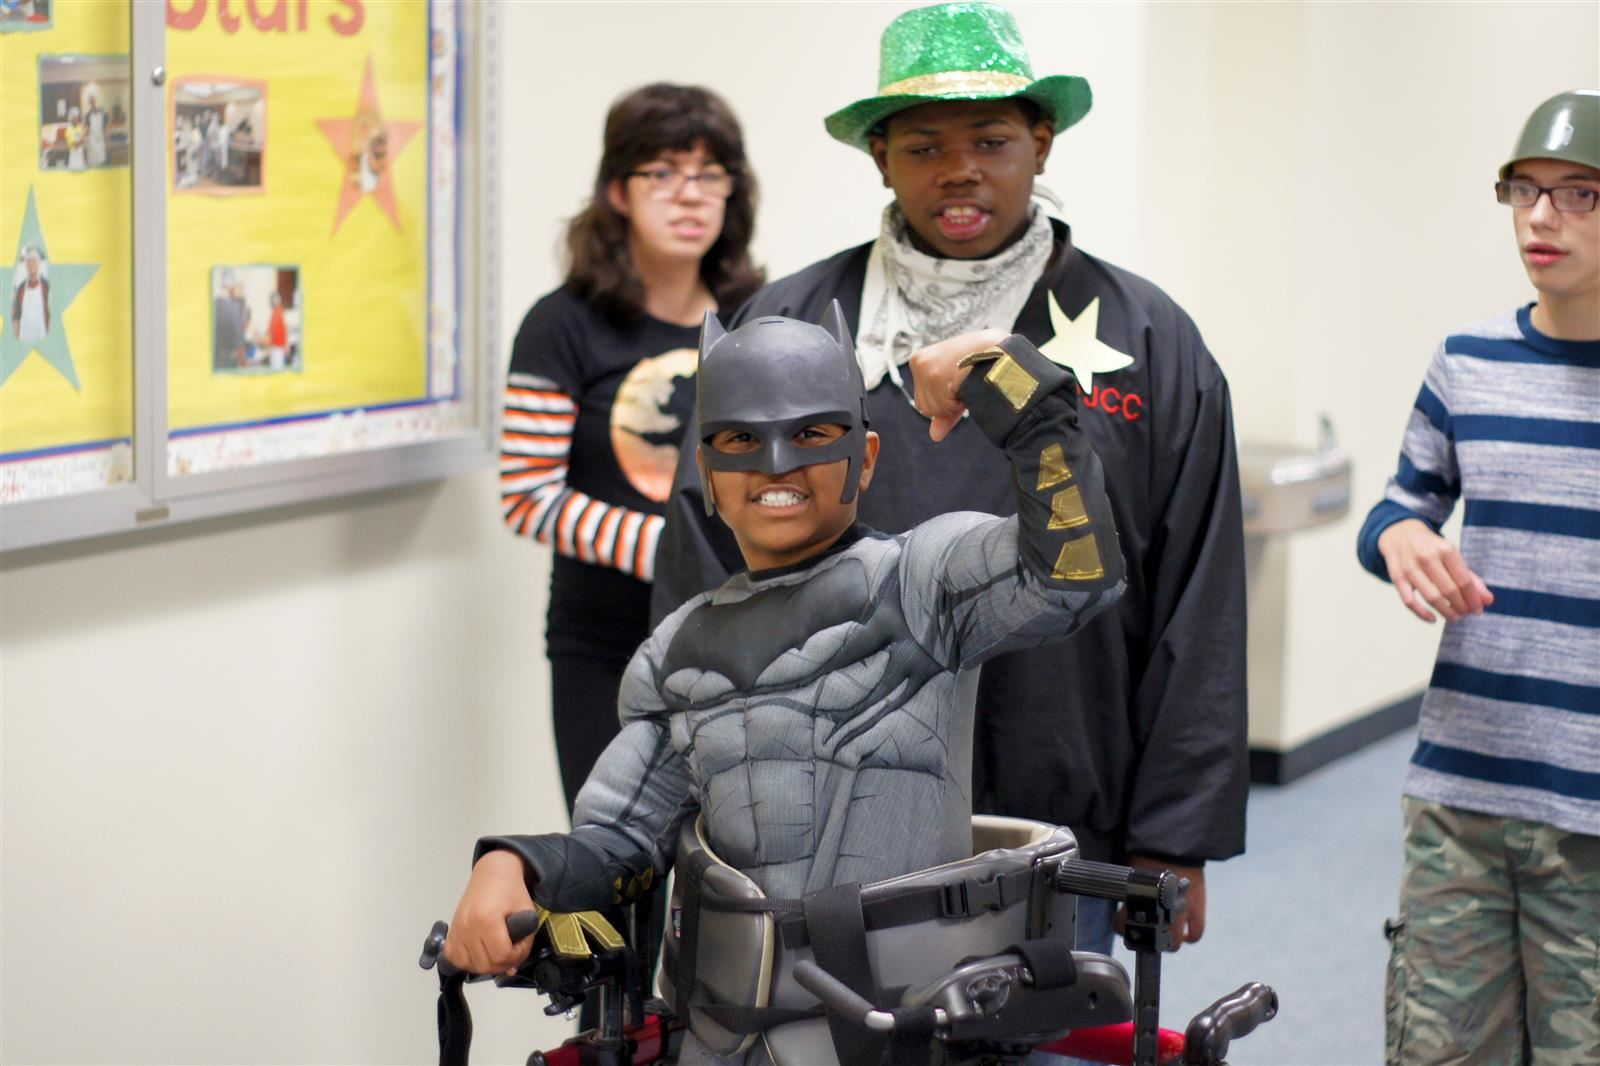 A student strikes a pose during the Halloween parade.